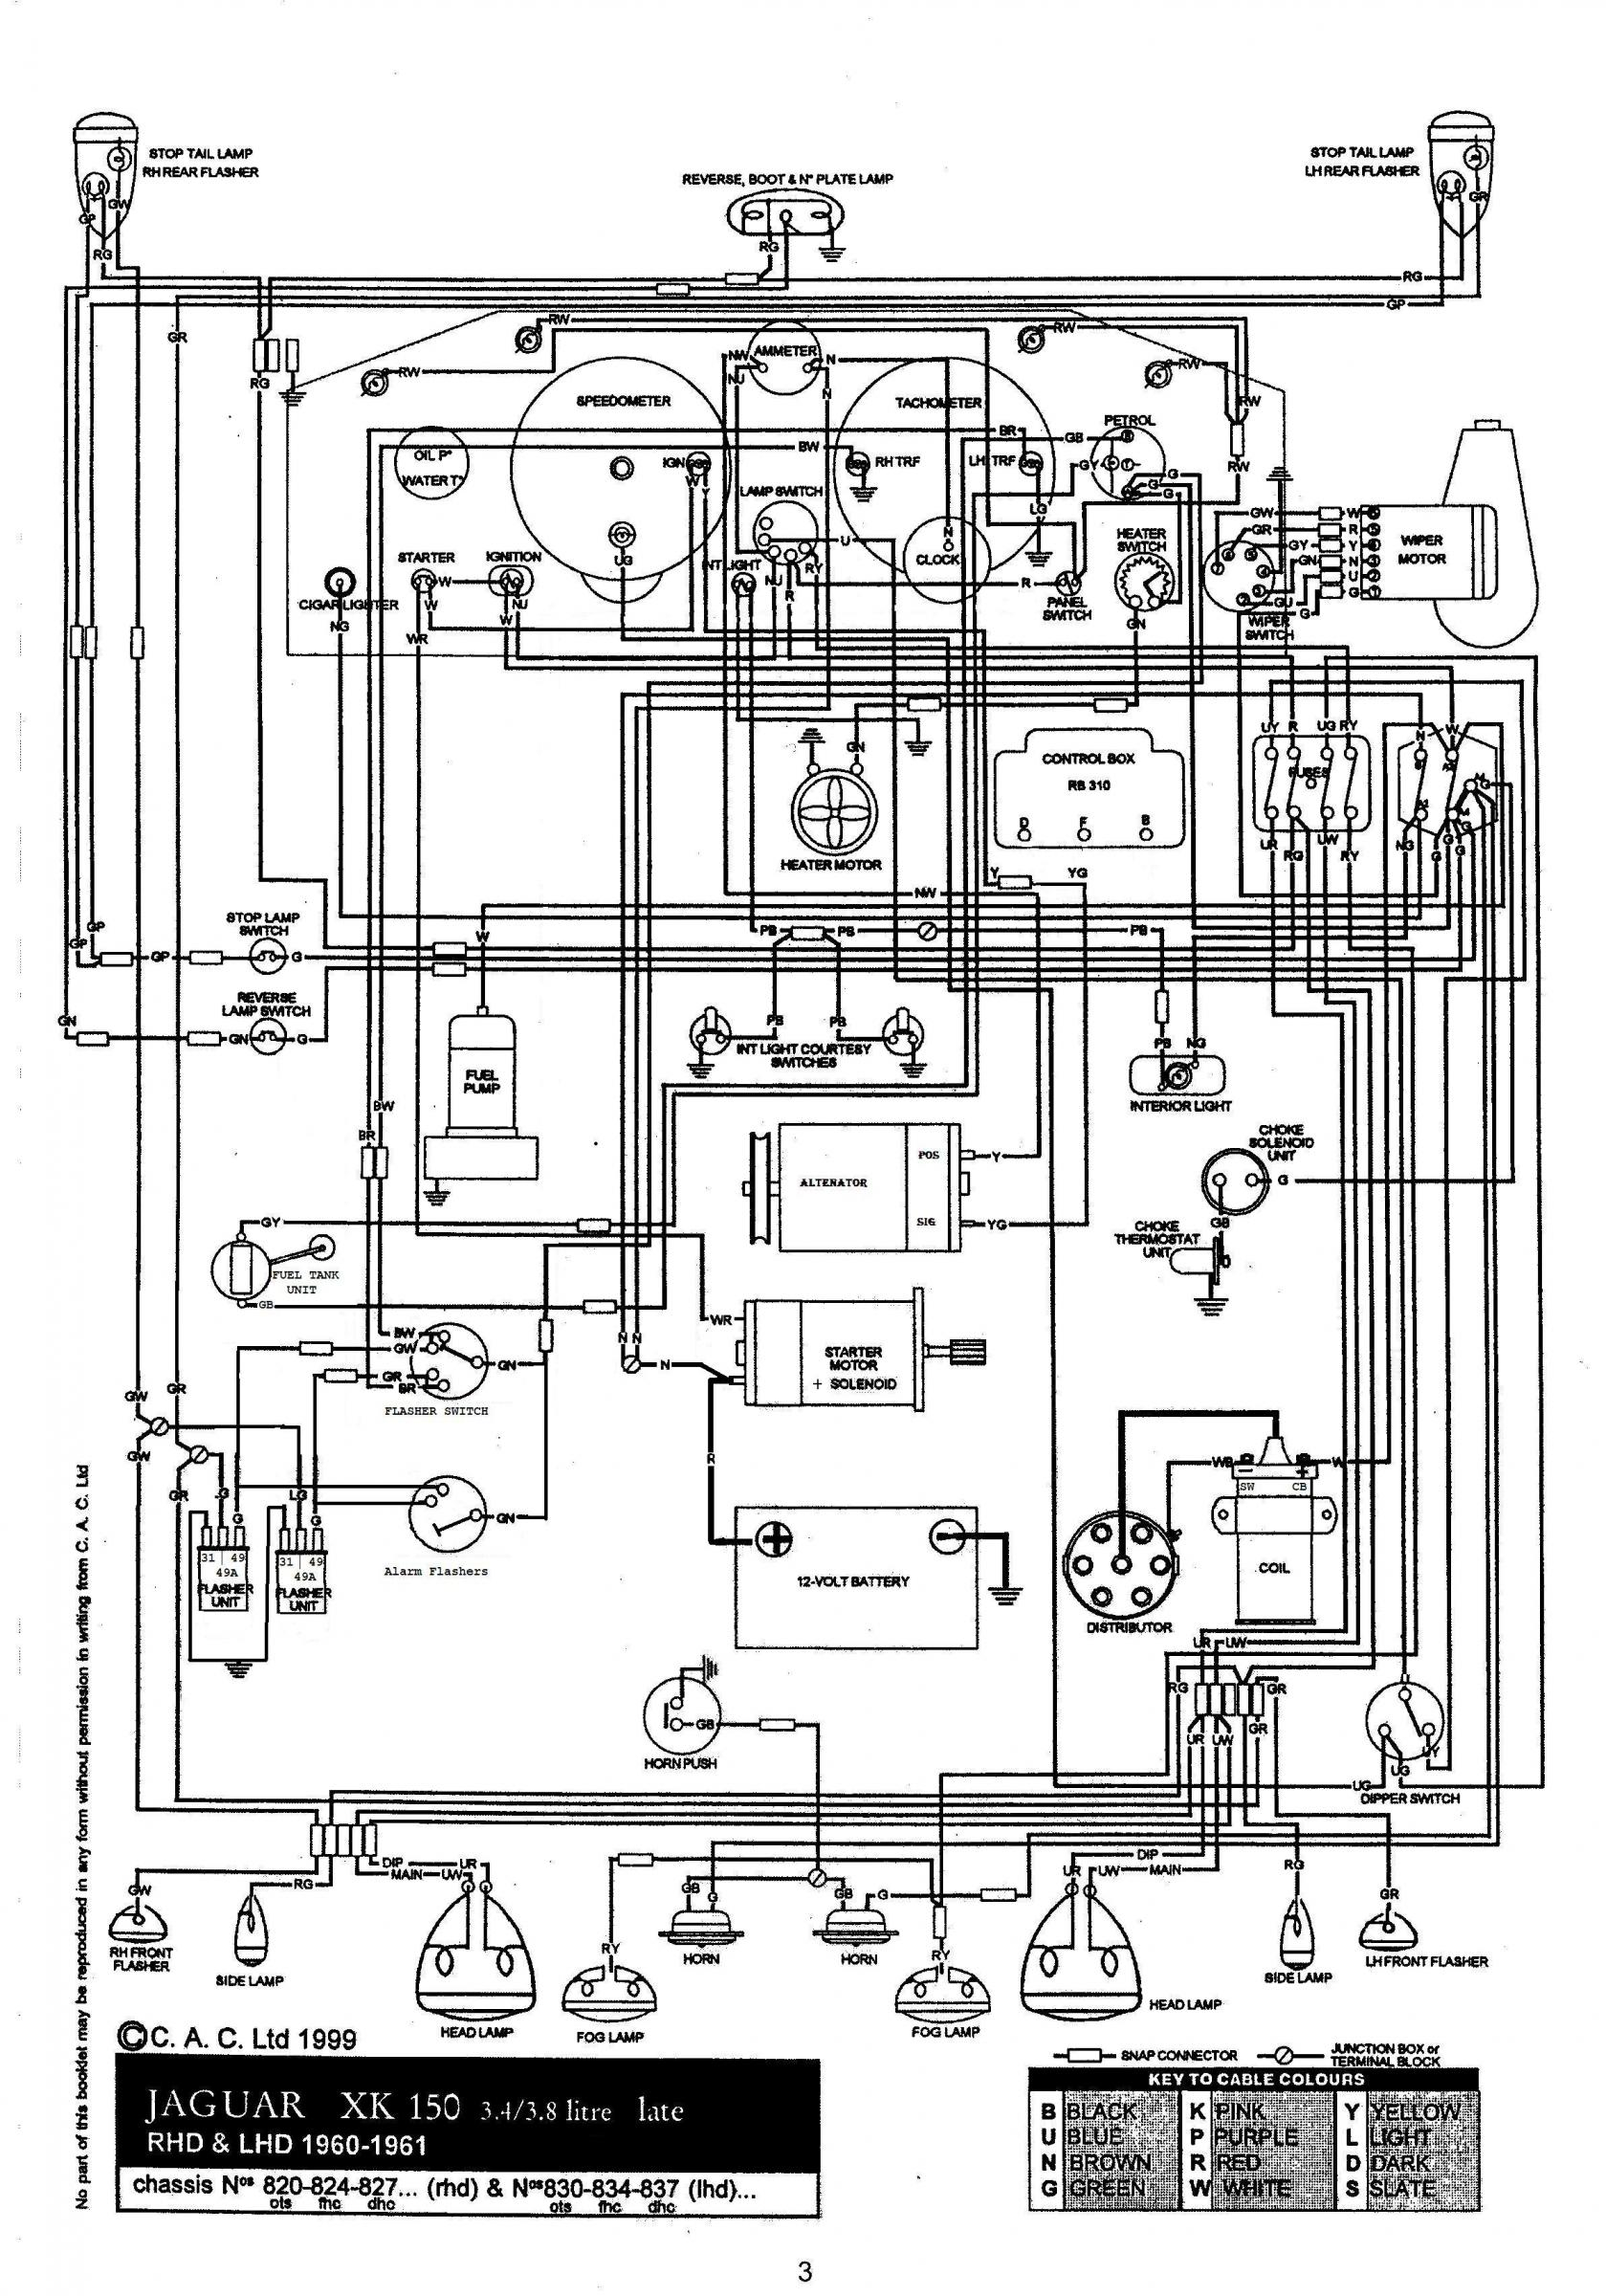 1960 Dodge Dart Wiring Diagram Get Free Image About, 1960